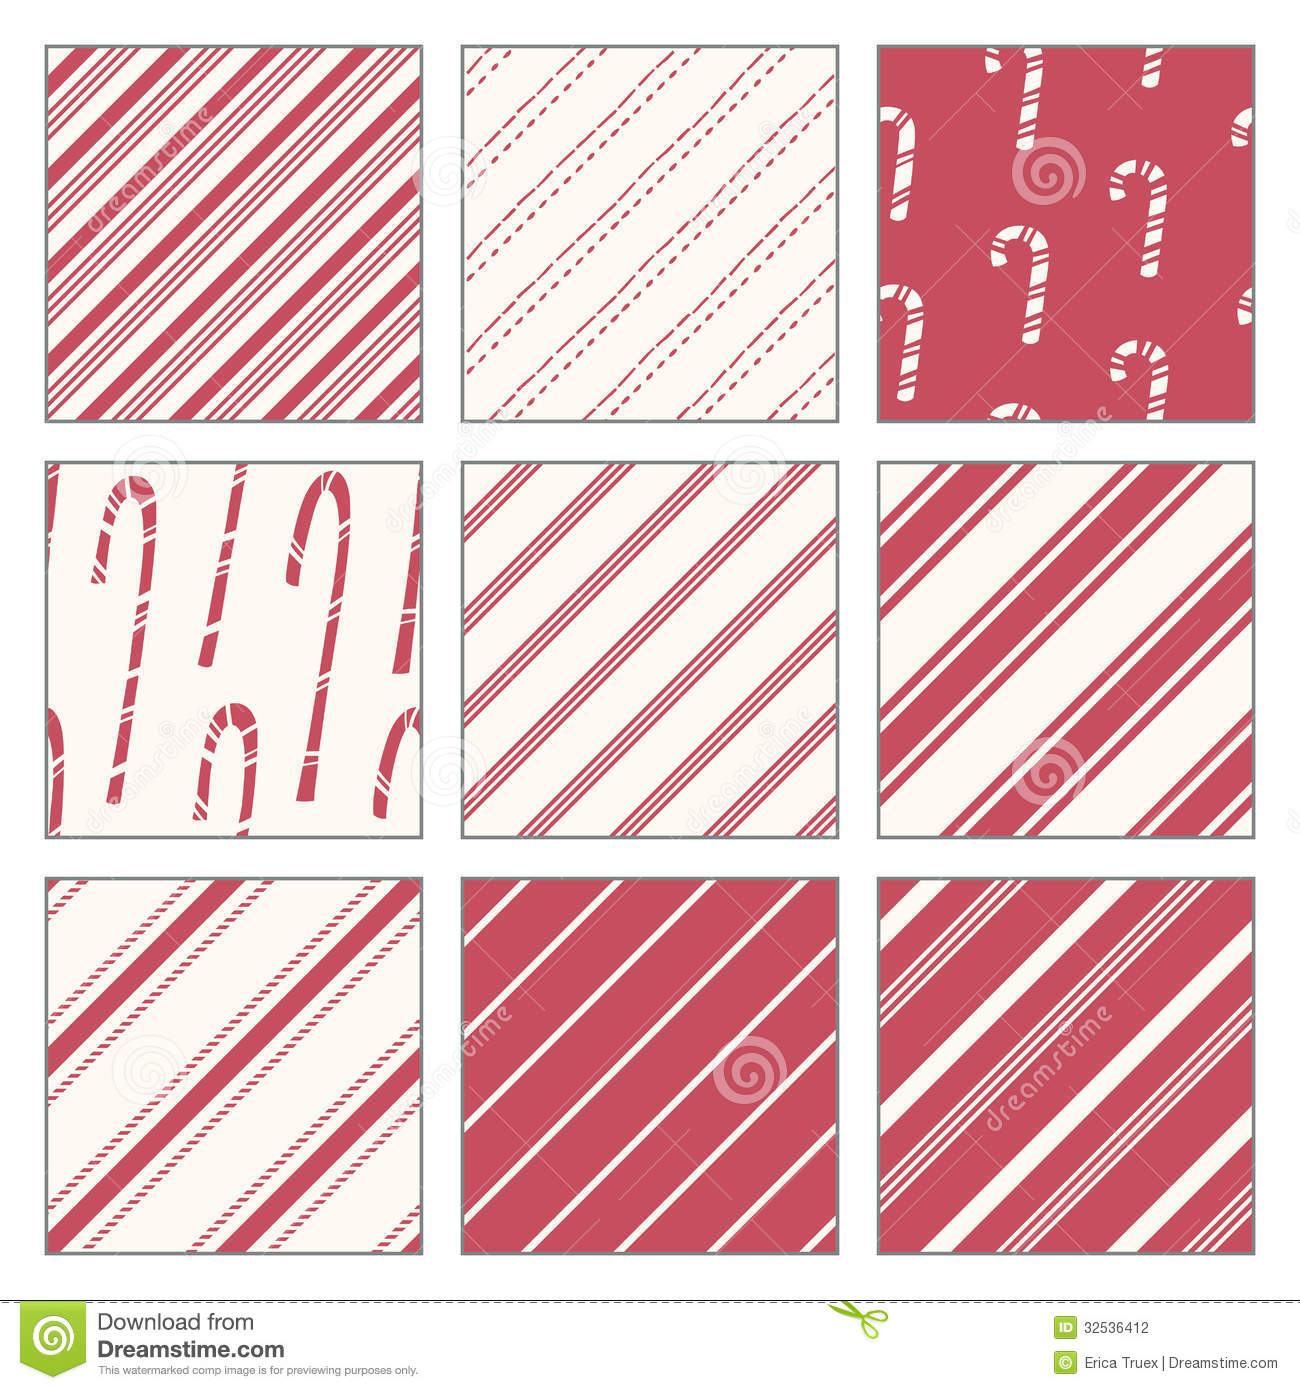 Candy Cane Pattern Candy cane patterns